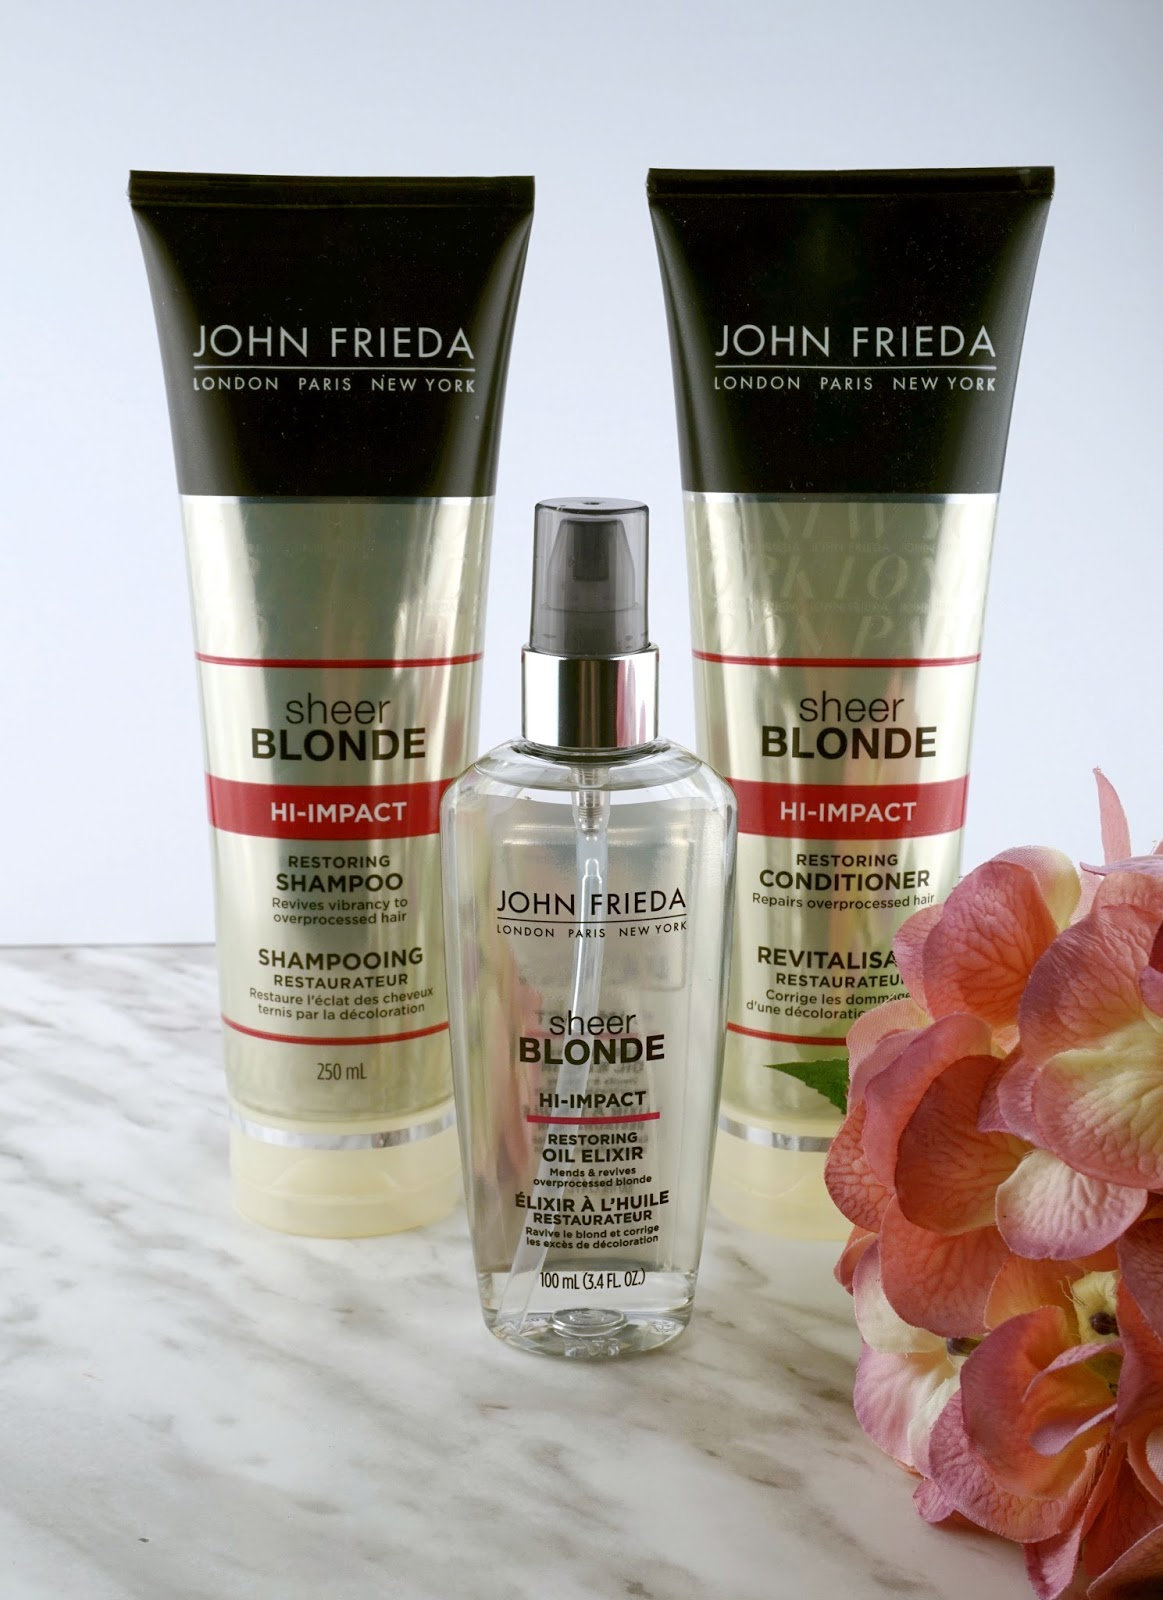 john frieda hi impact sheer blonde shampoo conditioner oil elixir review